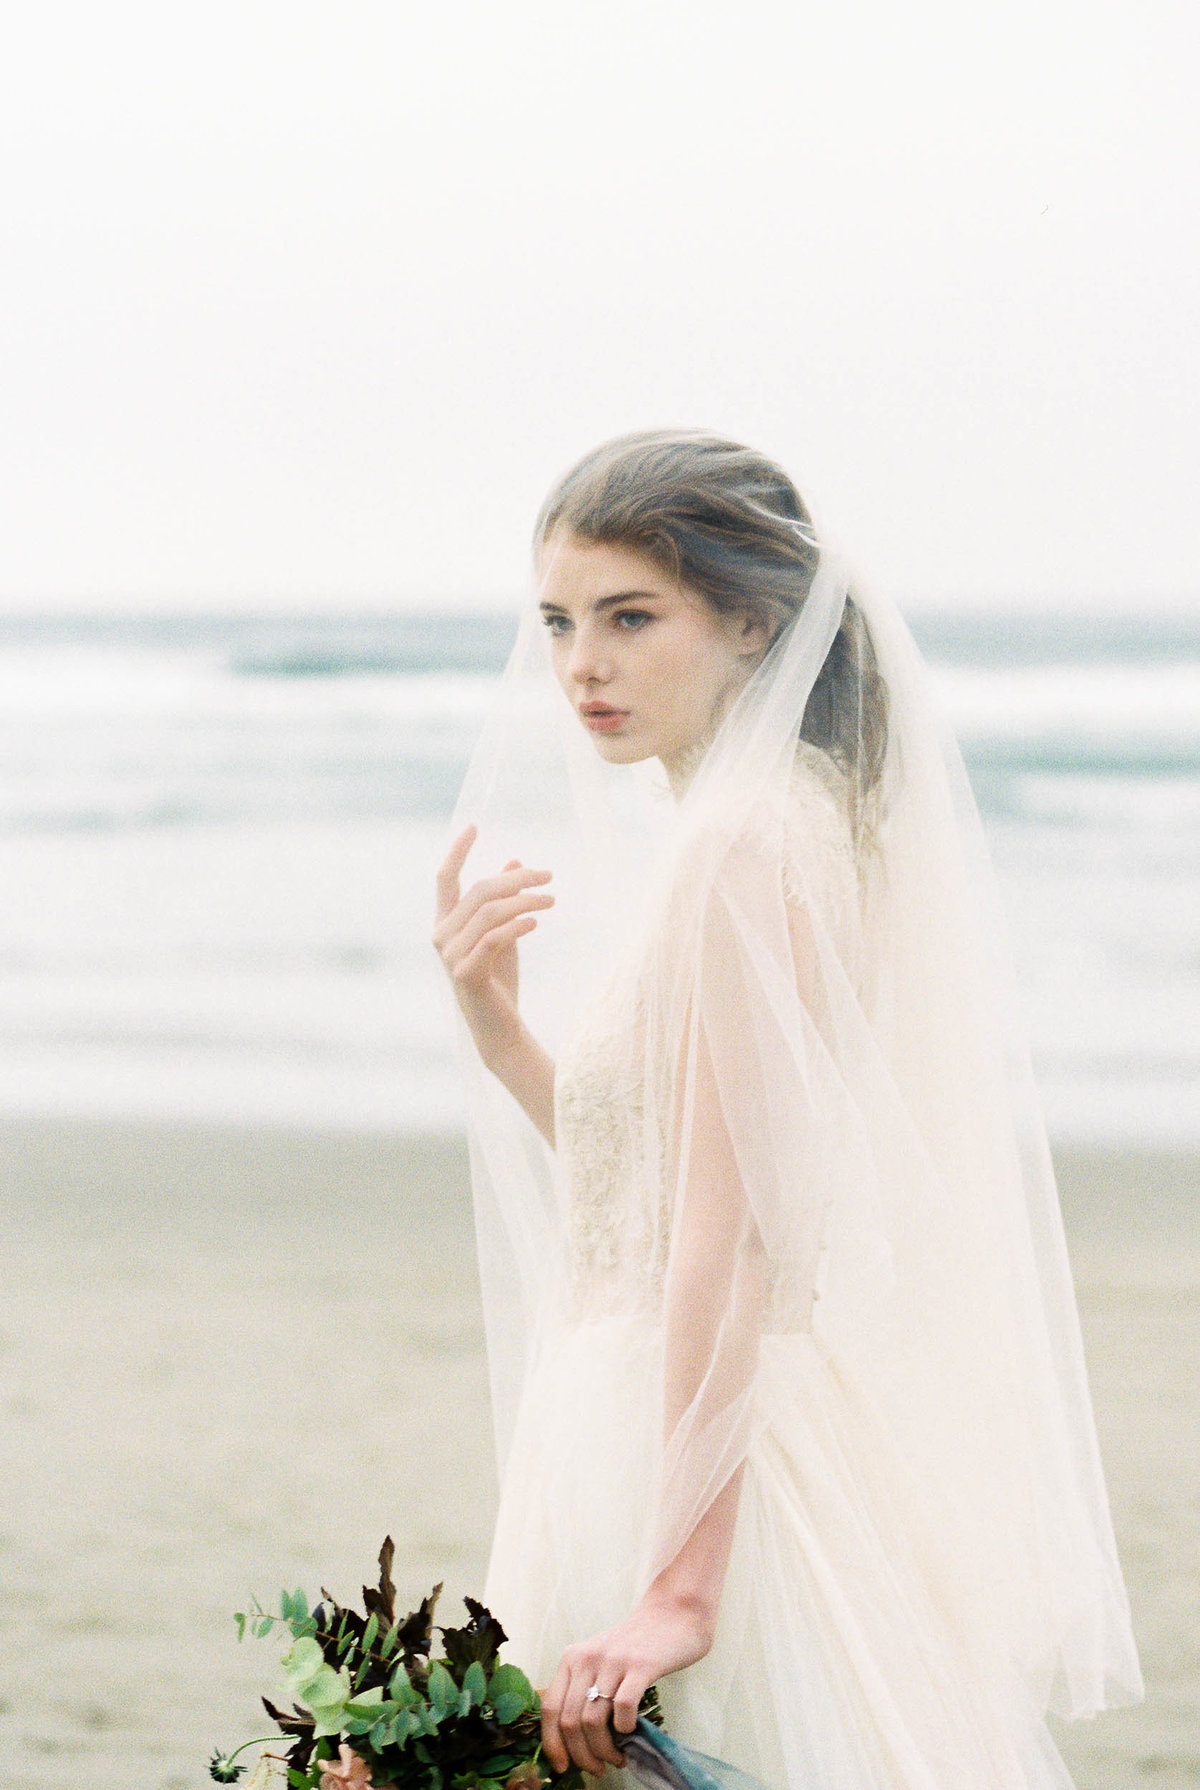 Cannon-Beach-Bridal-Editorial-Georgia-Ruth-Photography-4